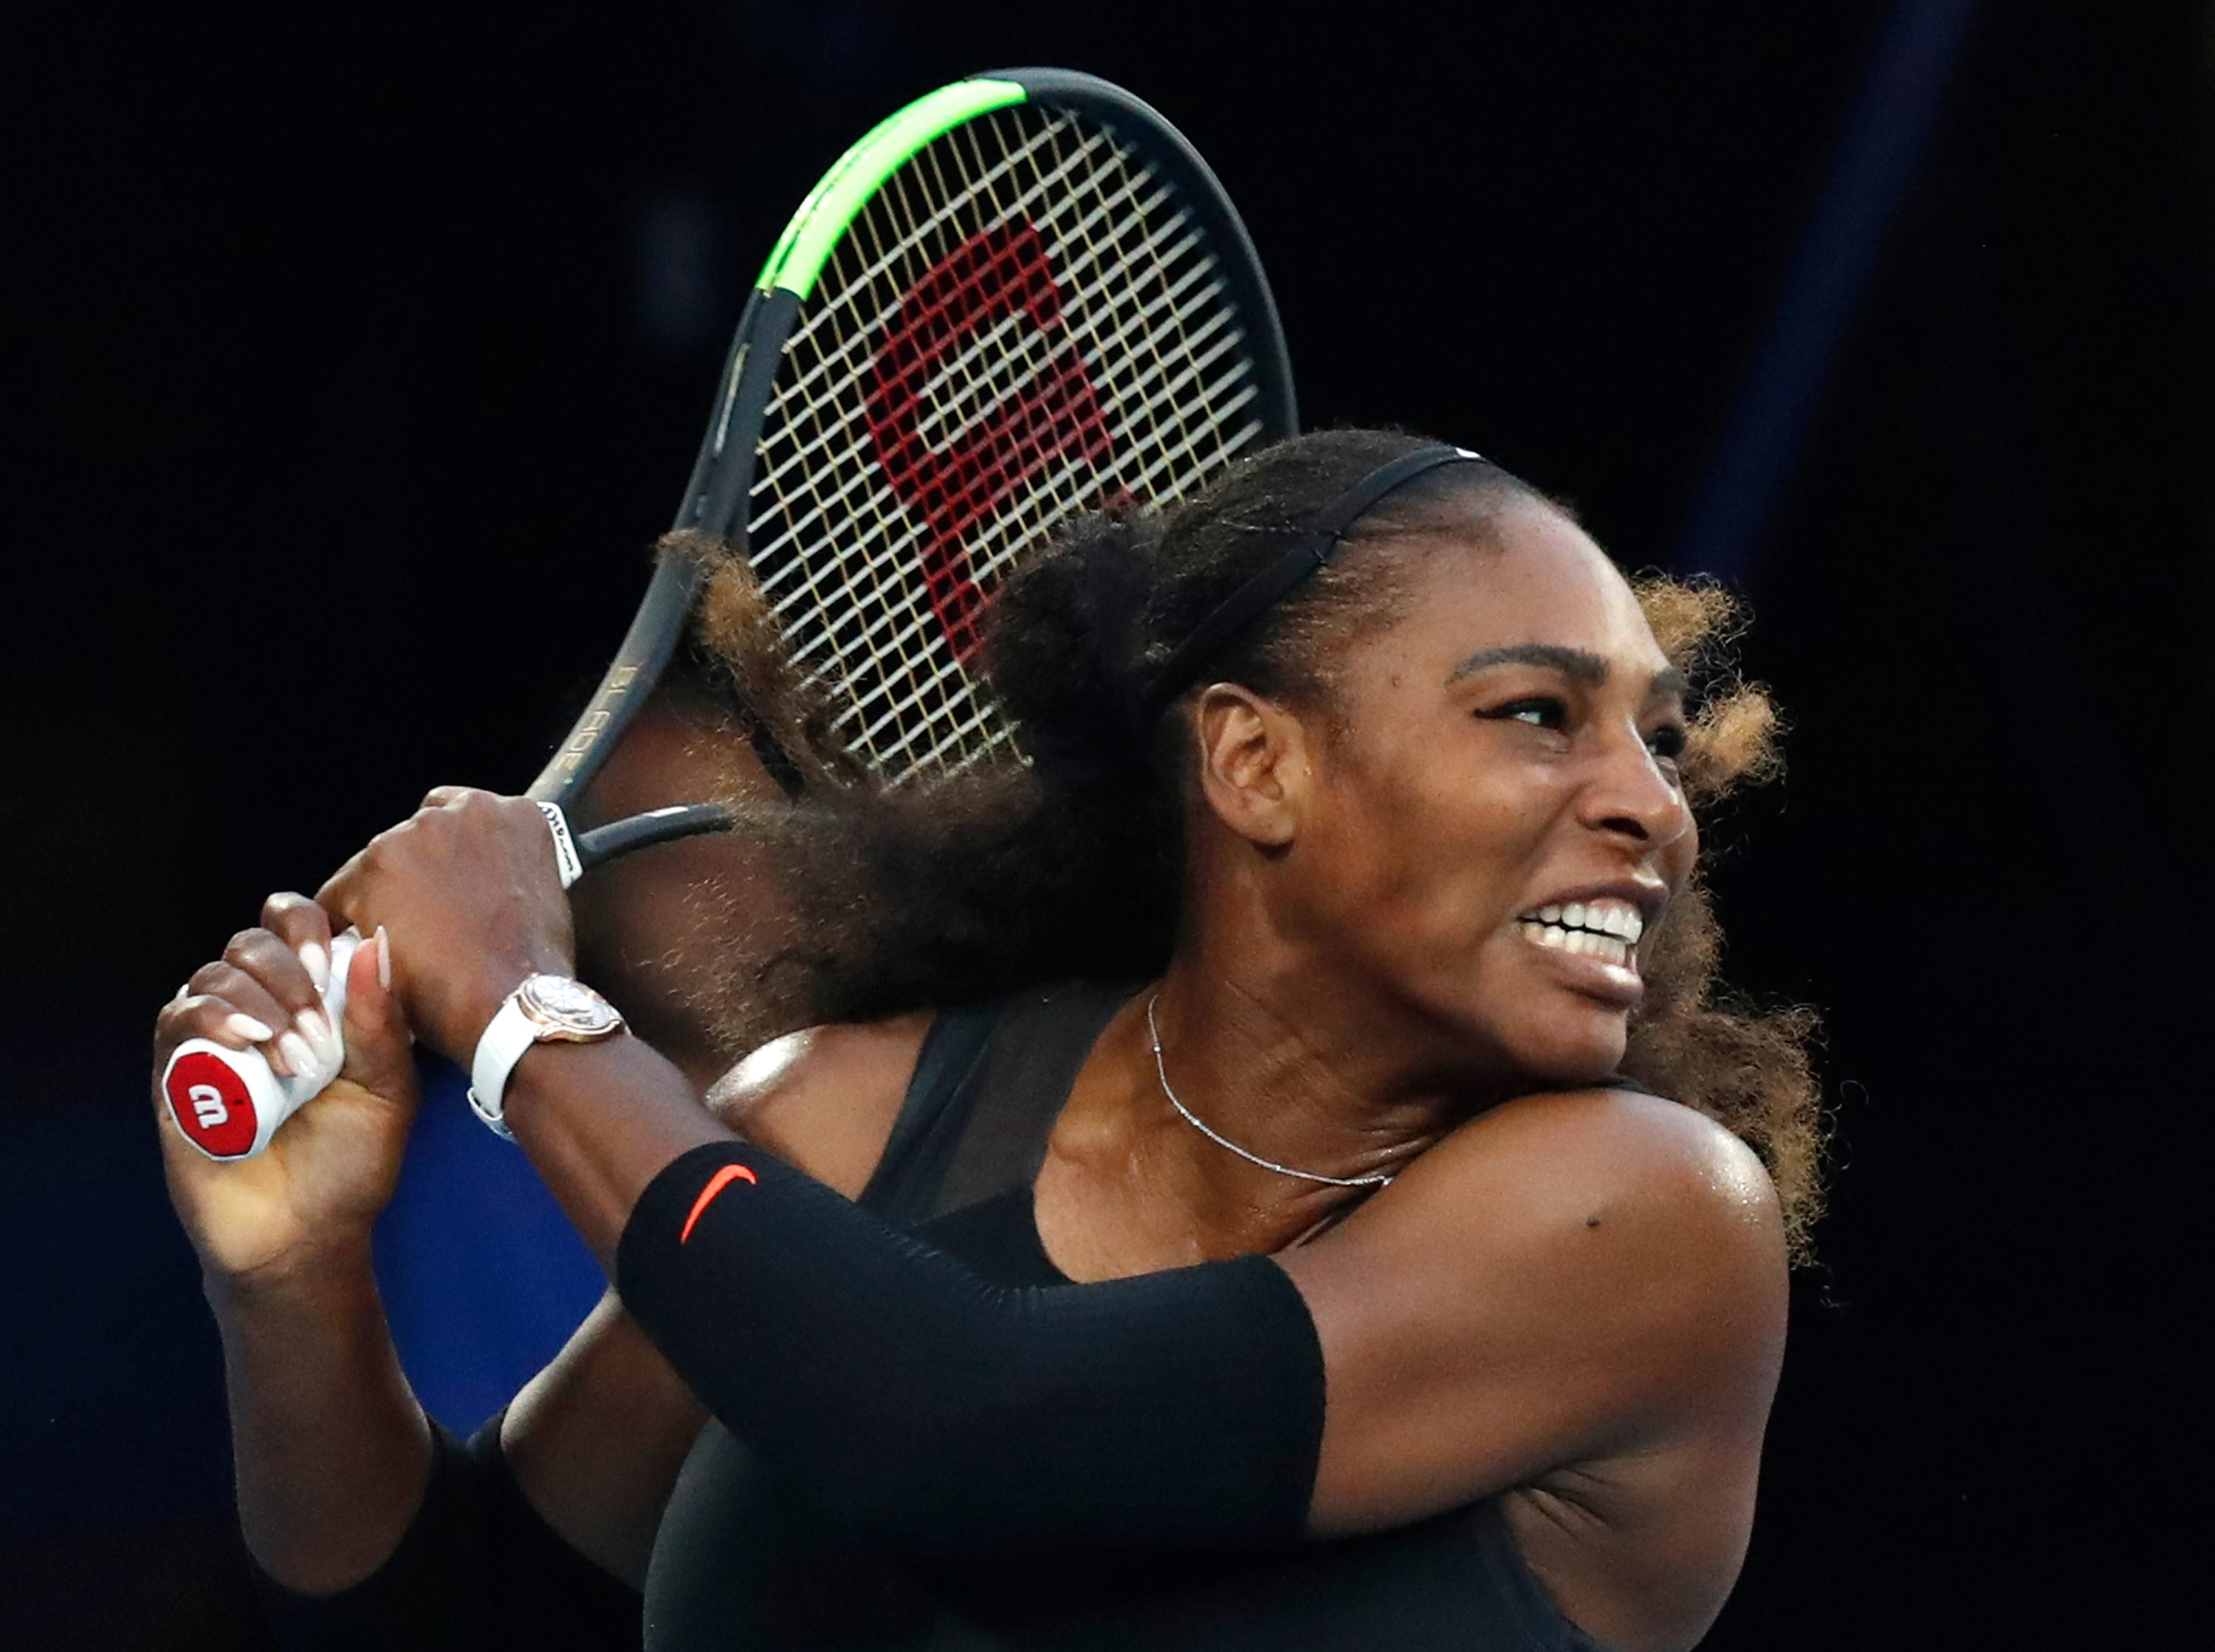 Watch Serena Williams 23 Grand Slam singles video